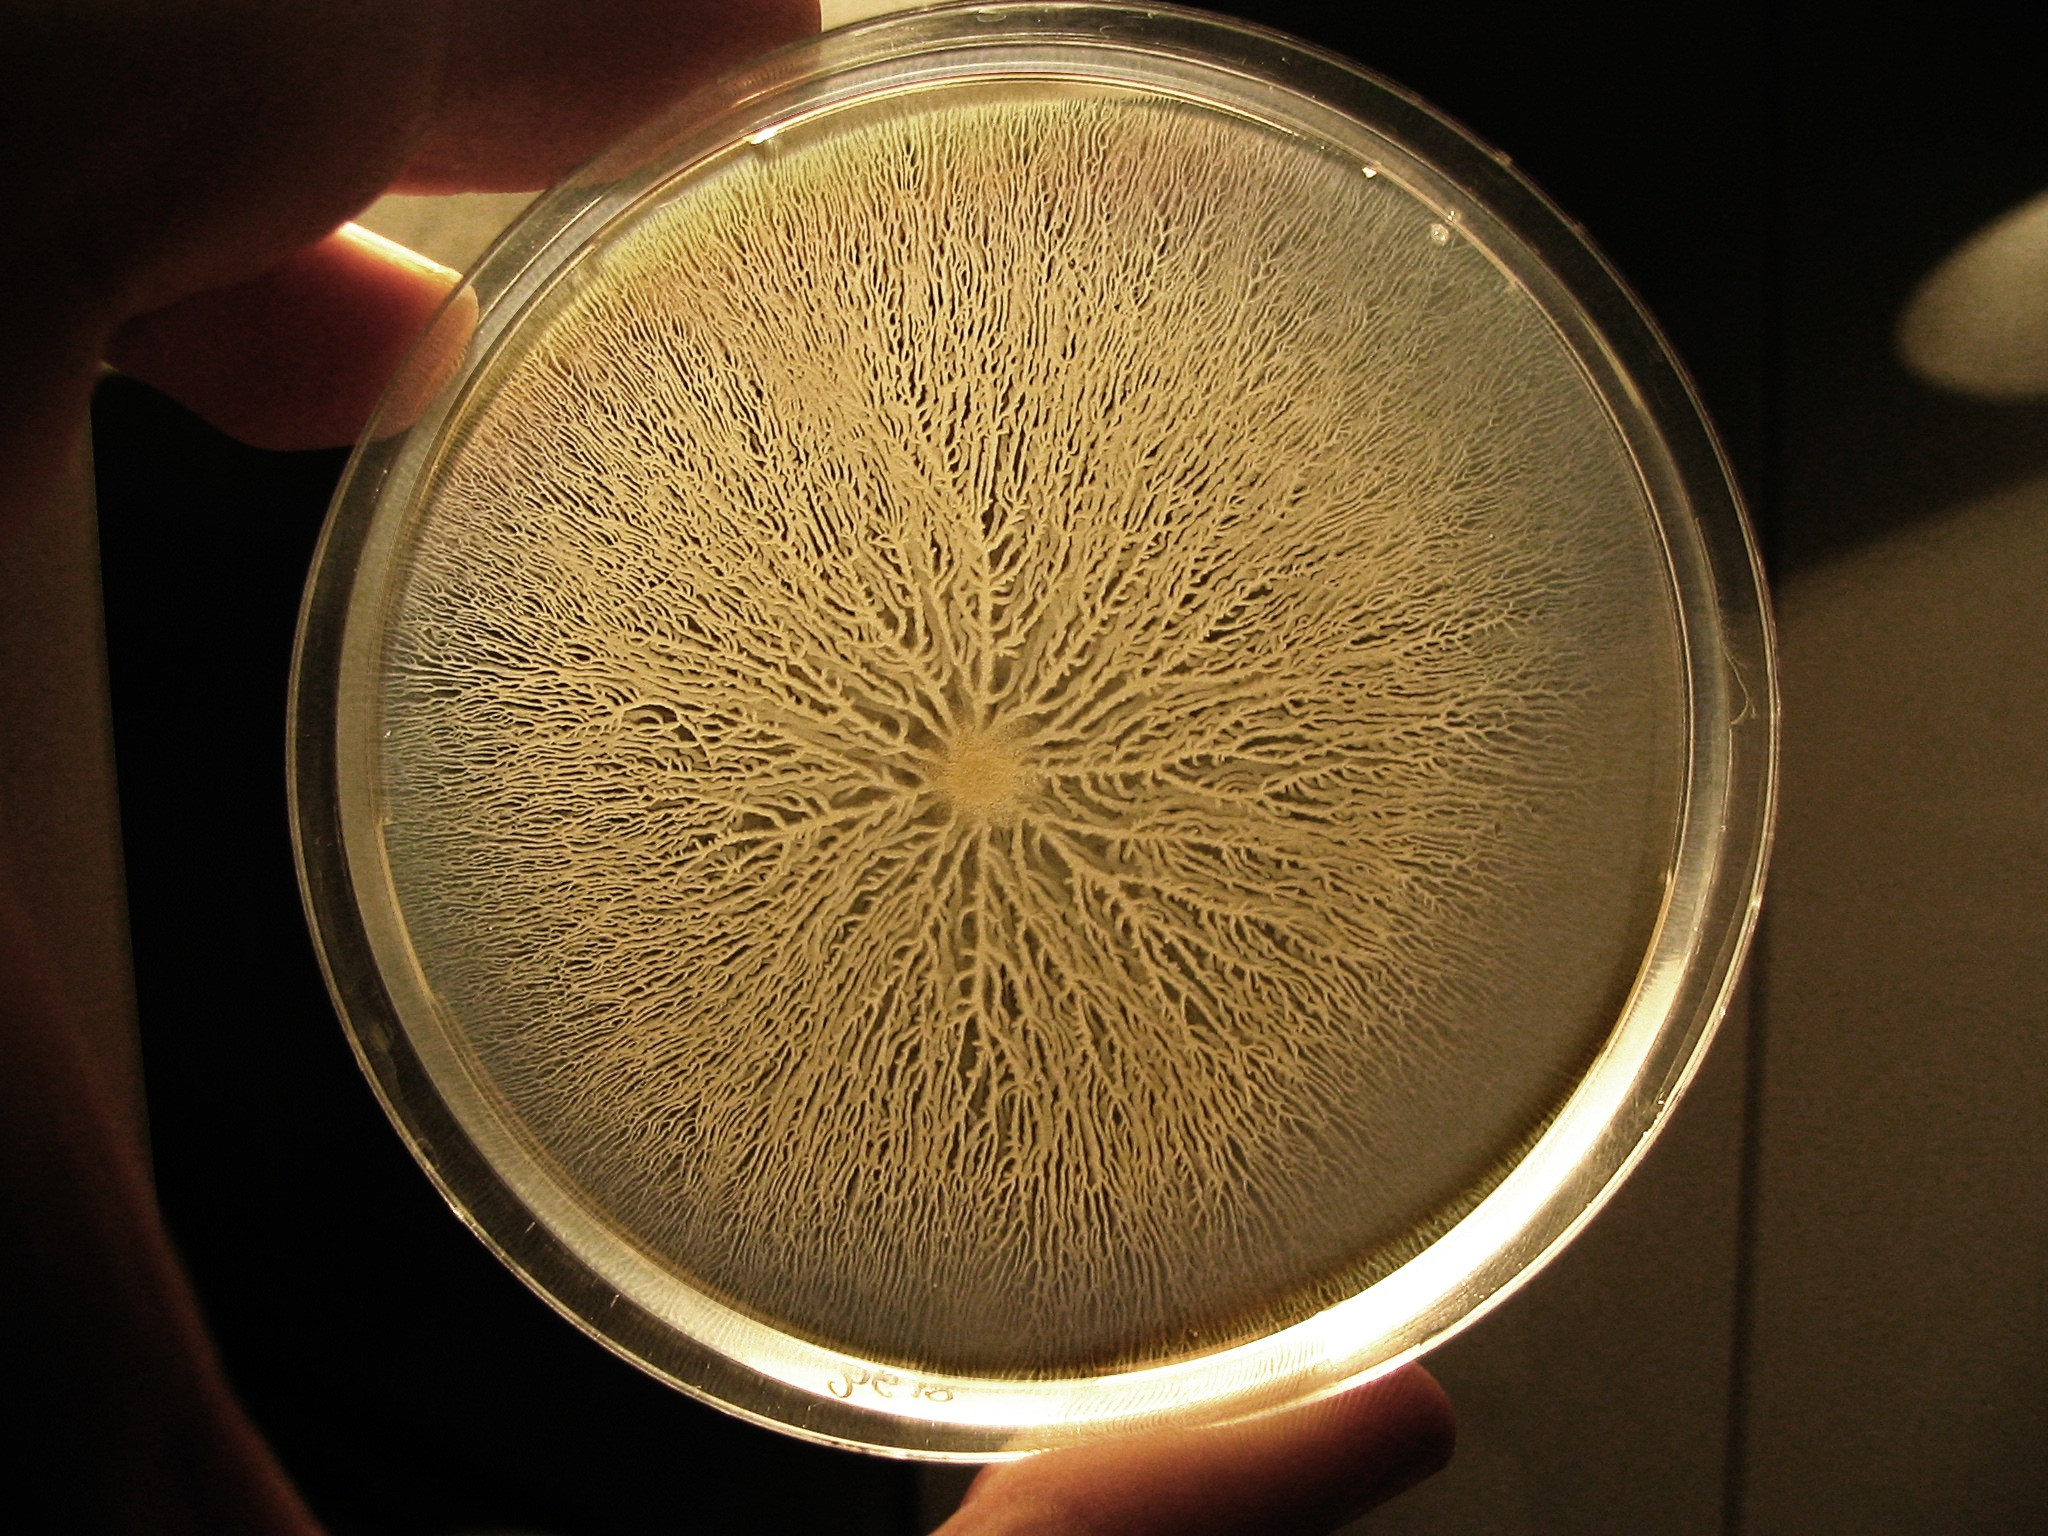 A swarm of   Bacillus subtilis  , whose electrical activity can force distant neighbors to join a biofilm. Image courtesy Wikimedia Commons.